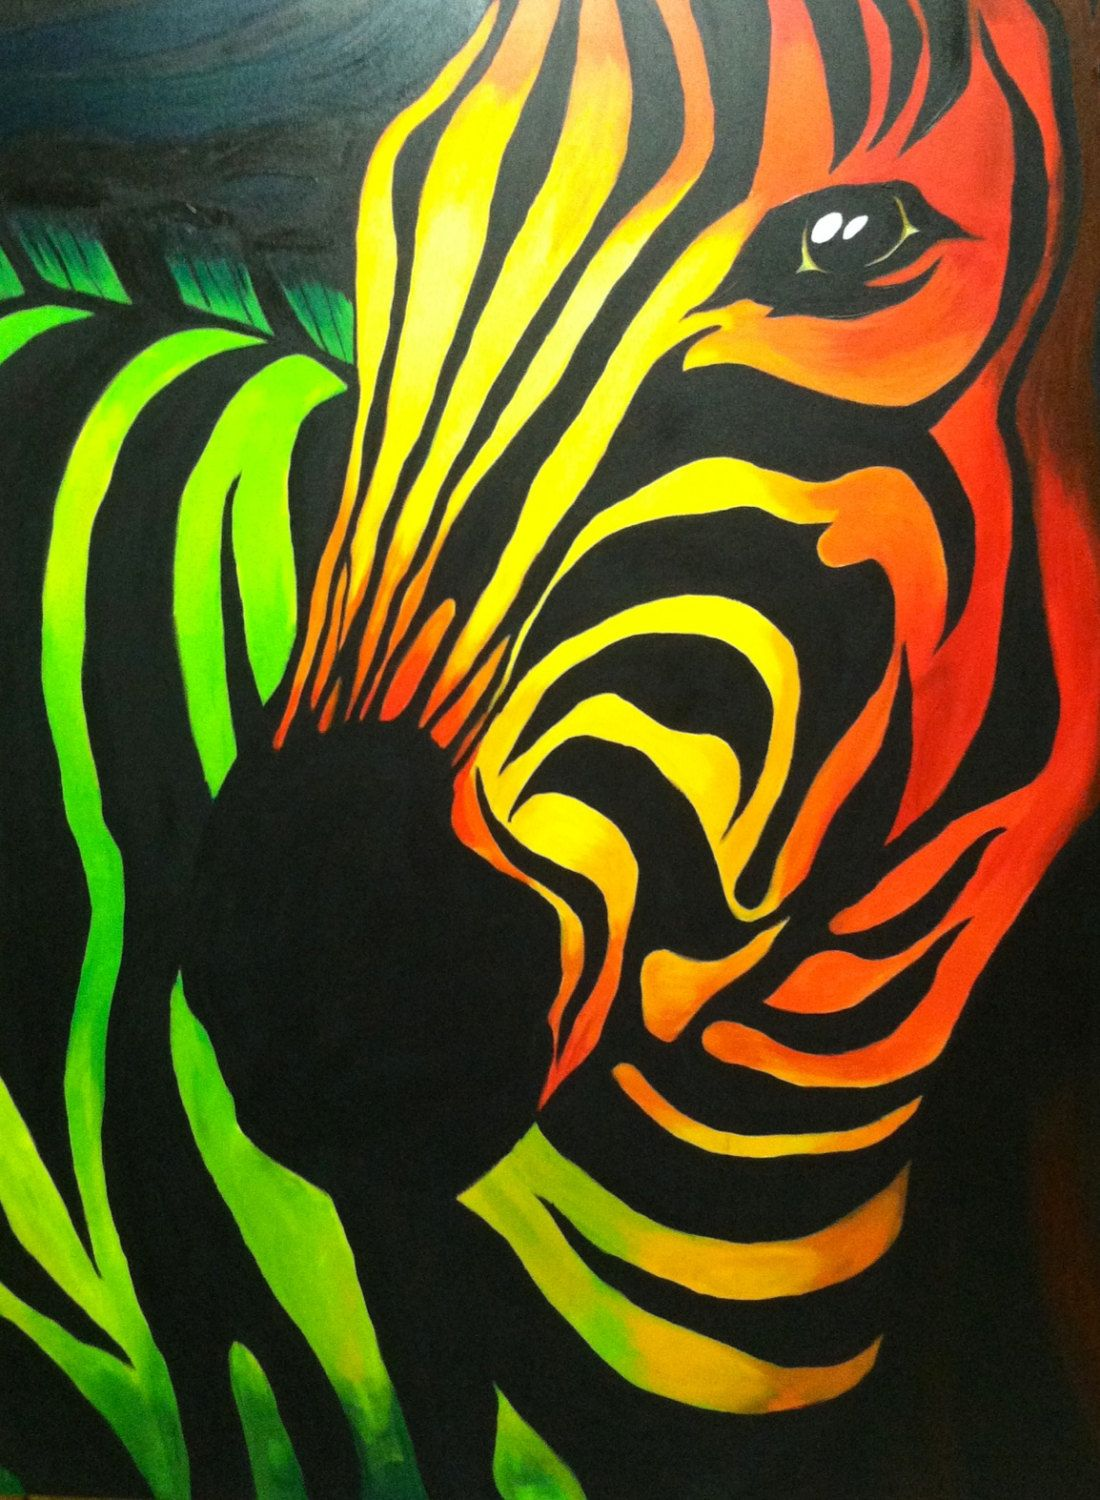 Colorful Zebra Print Nail Art Tutorial: Acrylic On Canvas. Multi Colored Abstract Zebra.